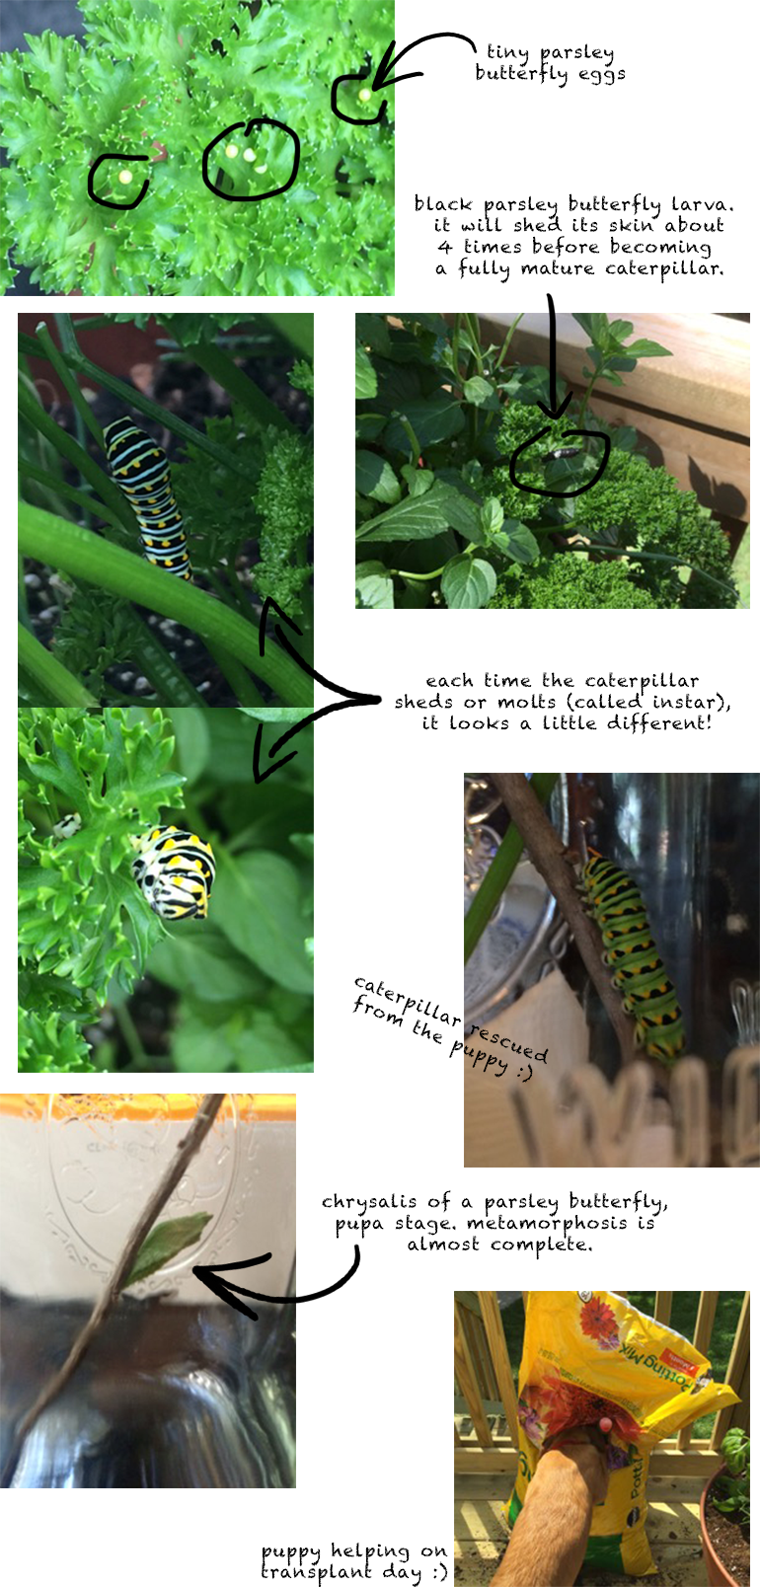 Attract butterflies with Click & Grow parsley